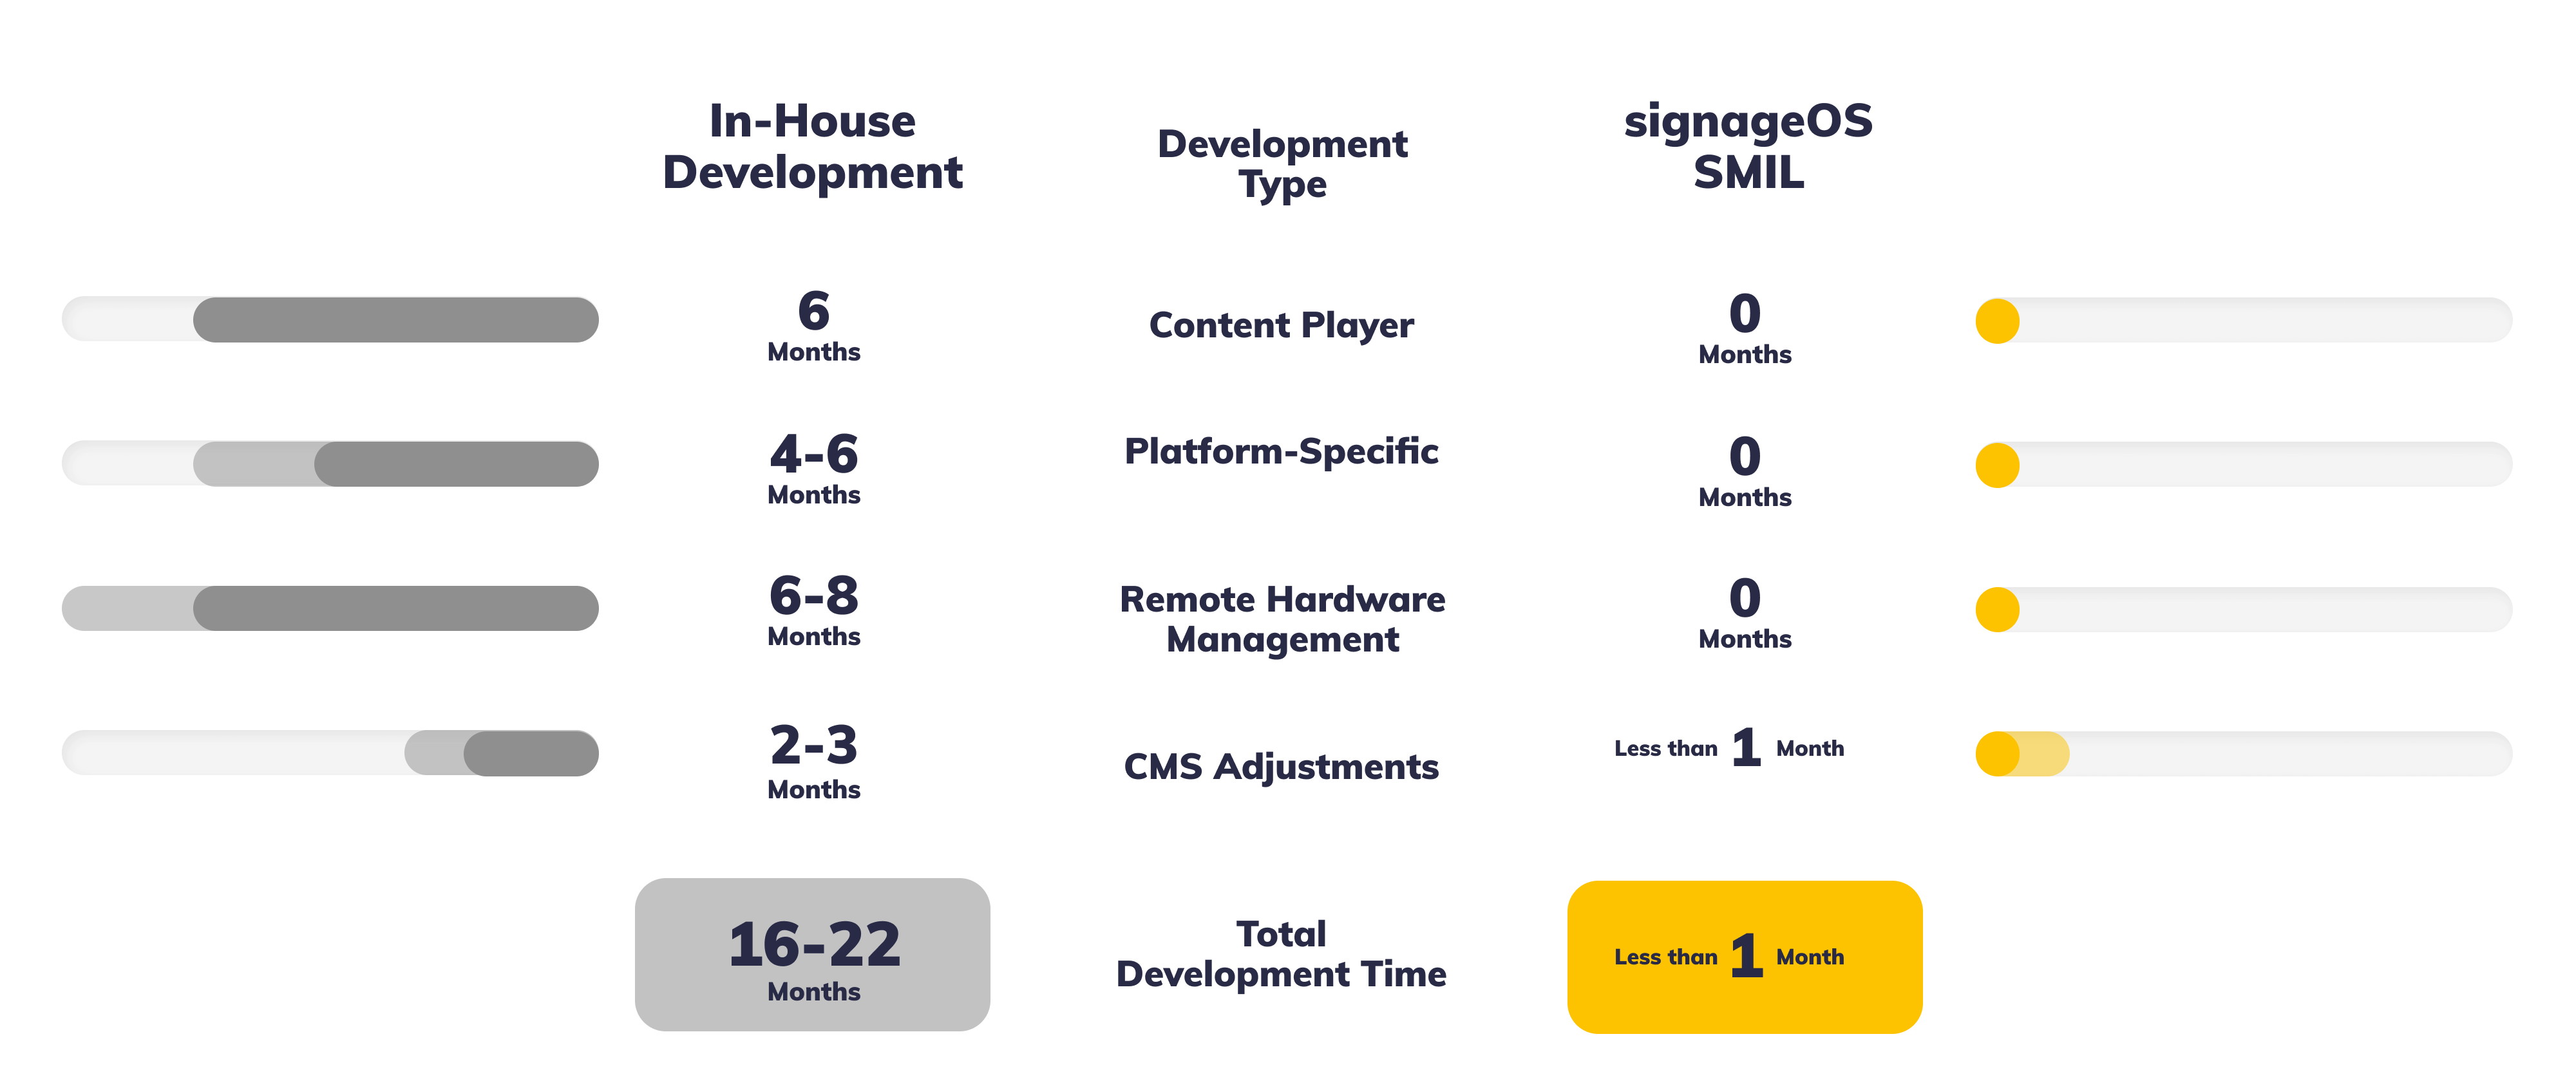 In-House Native App Development vs. signageOS SMIL Player